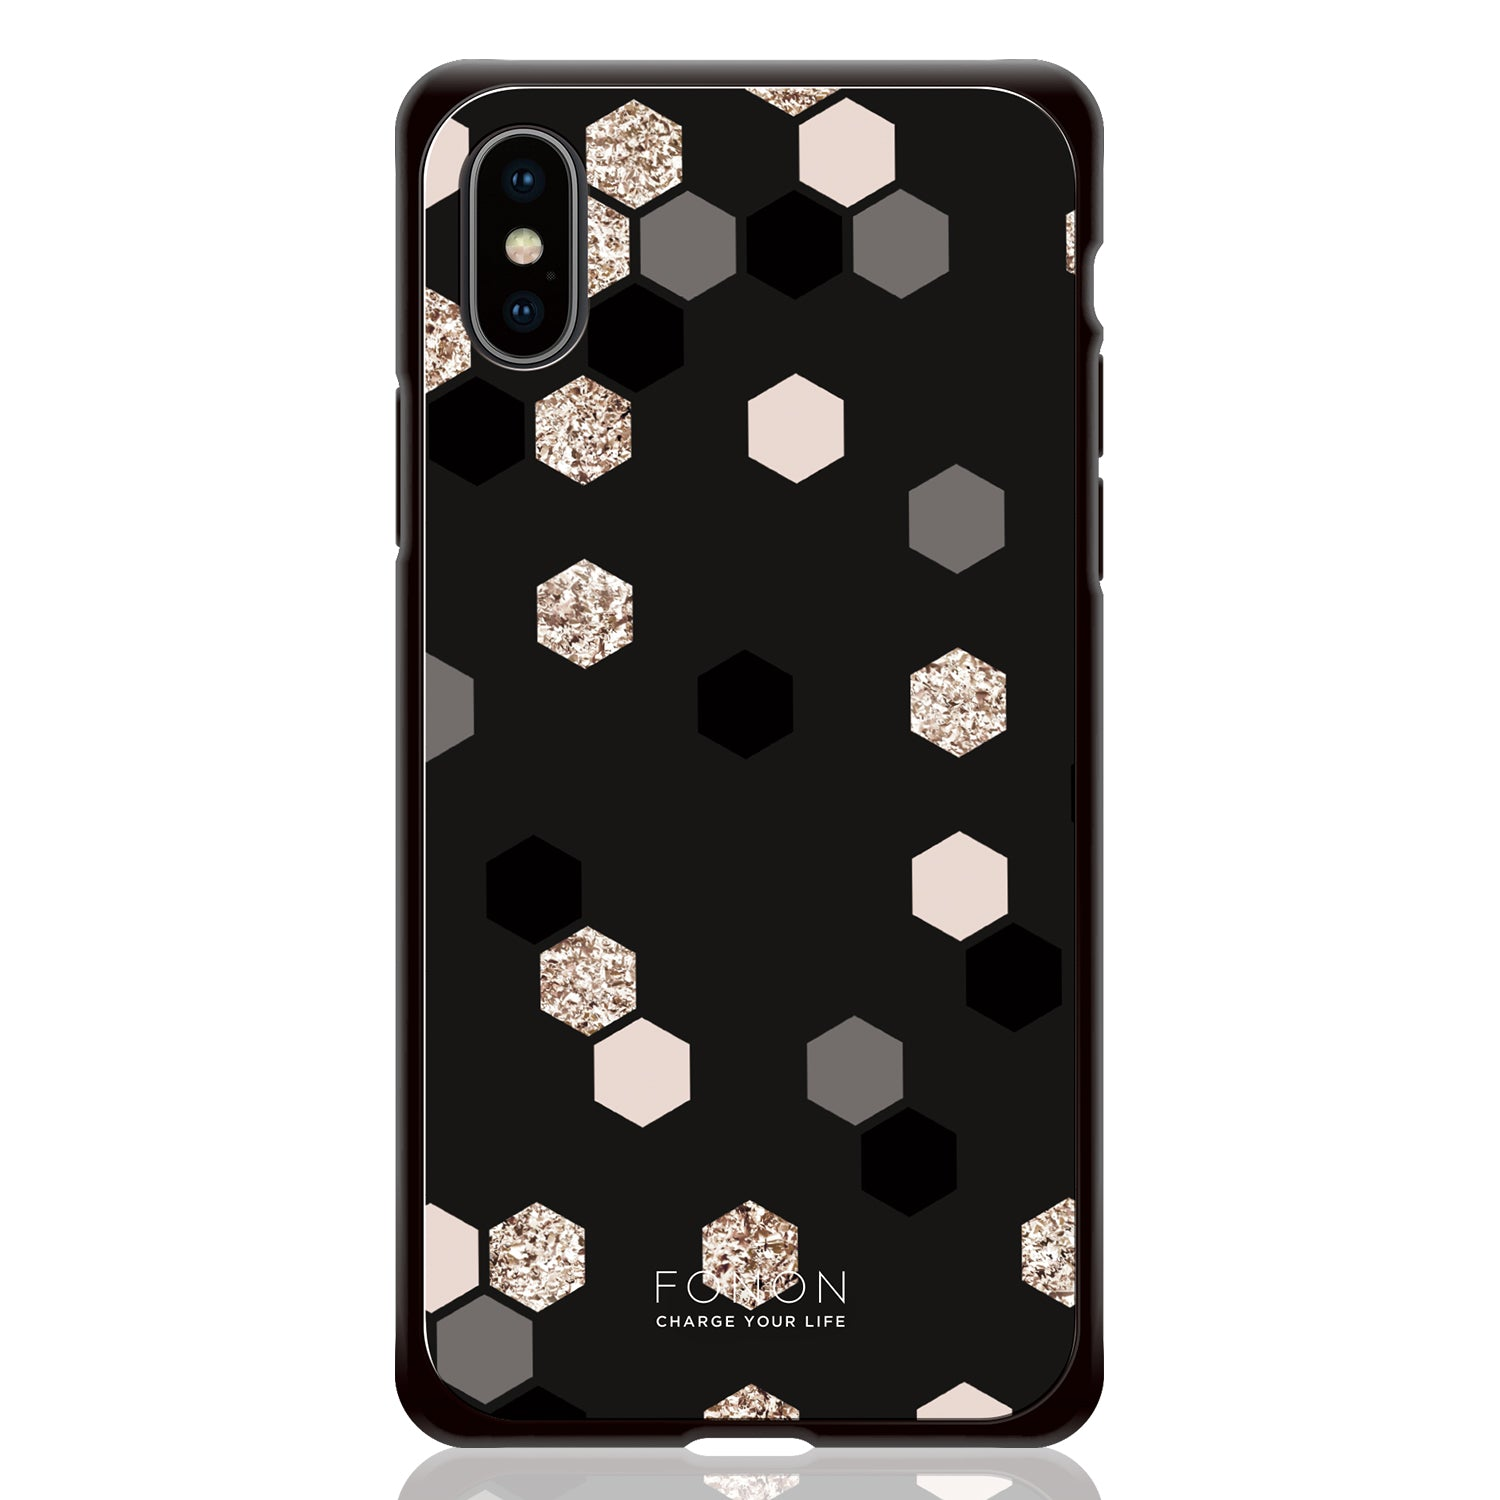 DAMPER GLASS iPhone CASE - GEOMETRIC PATTERN - Buzz